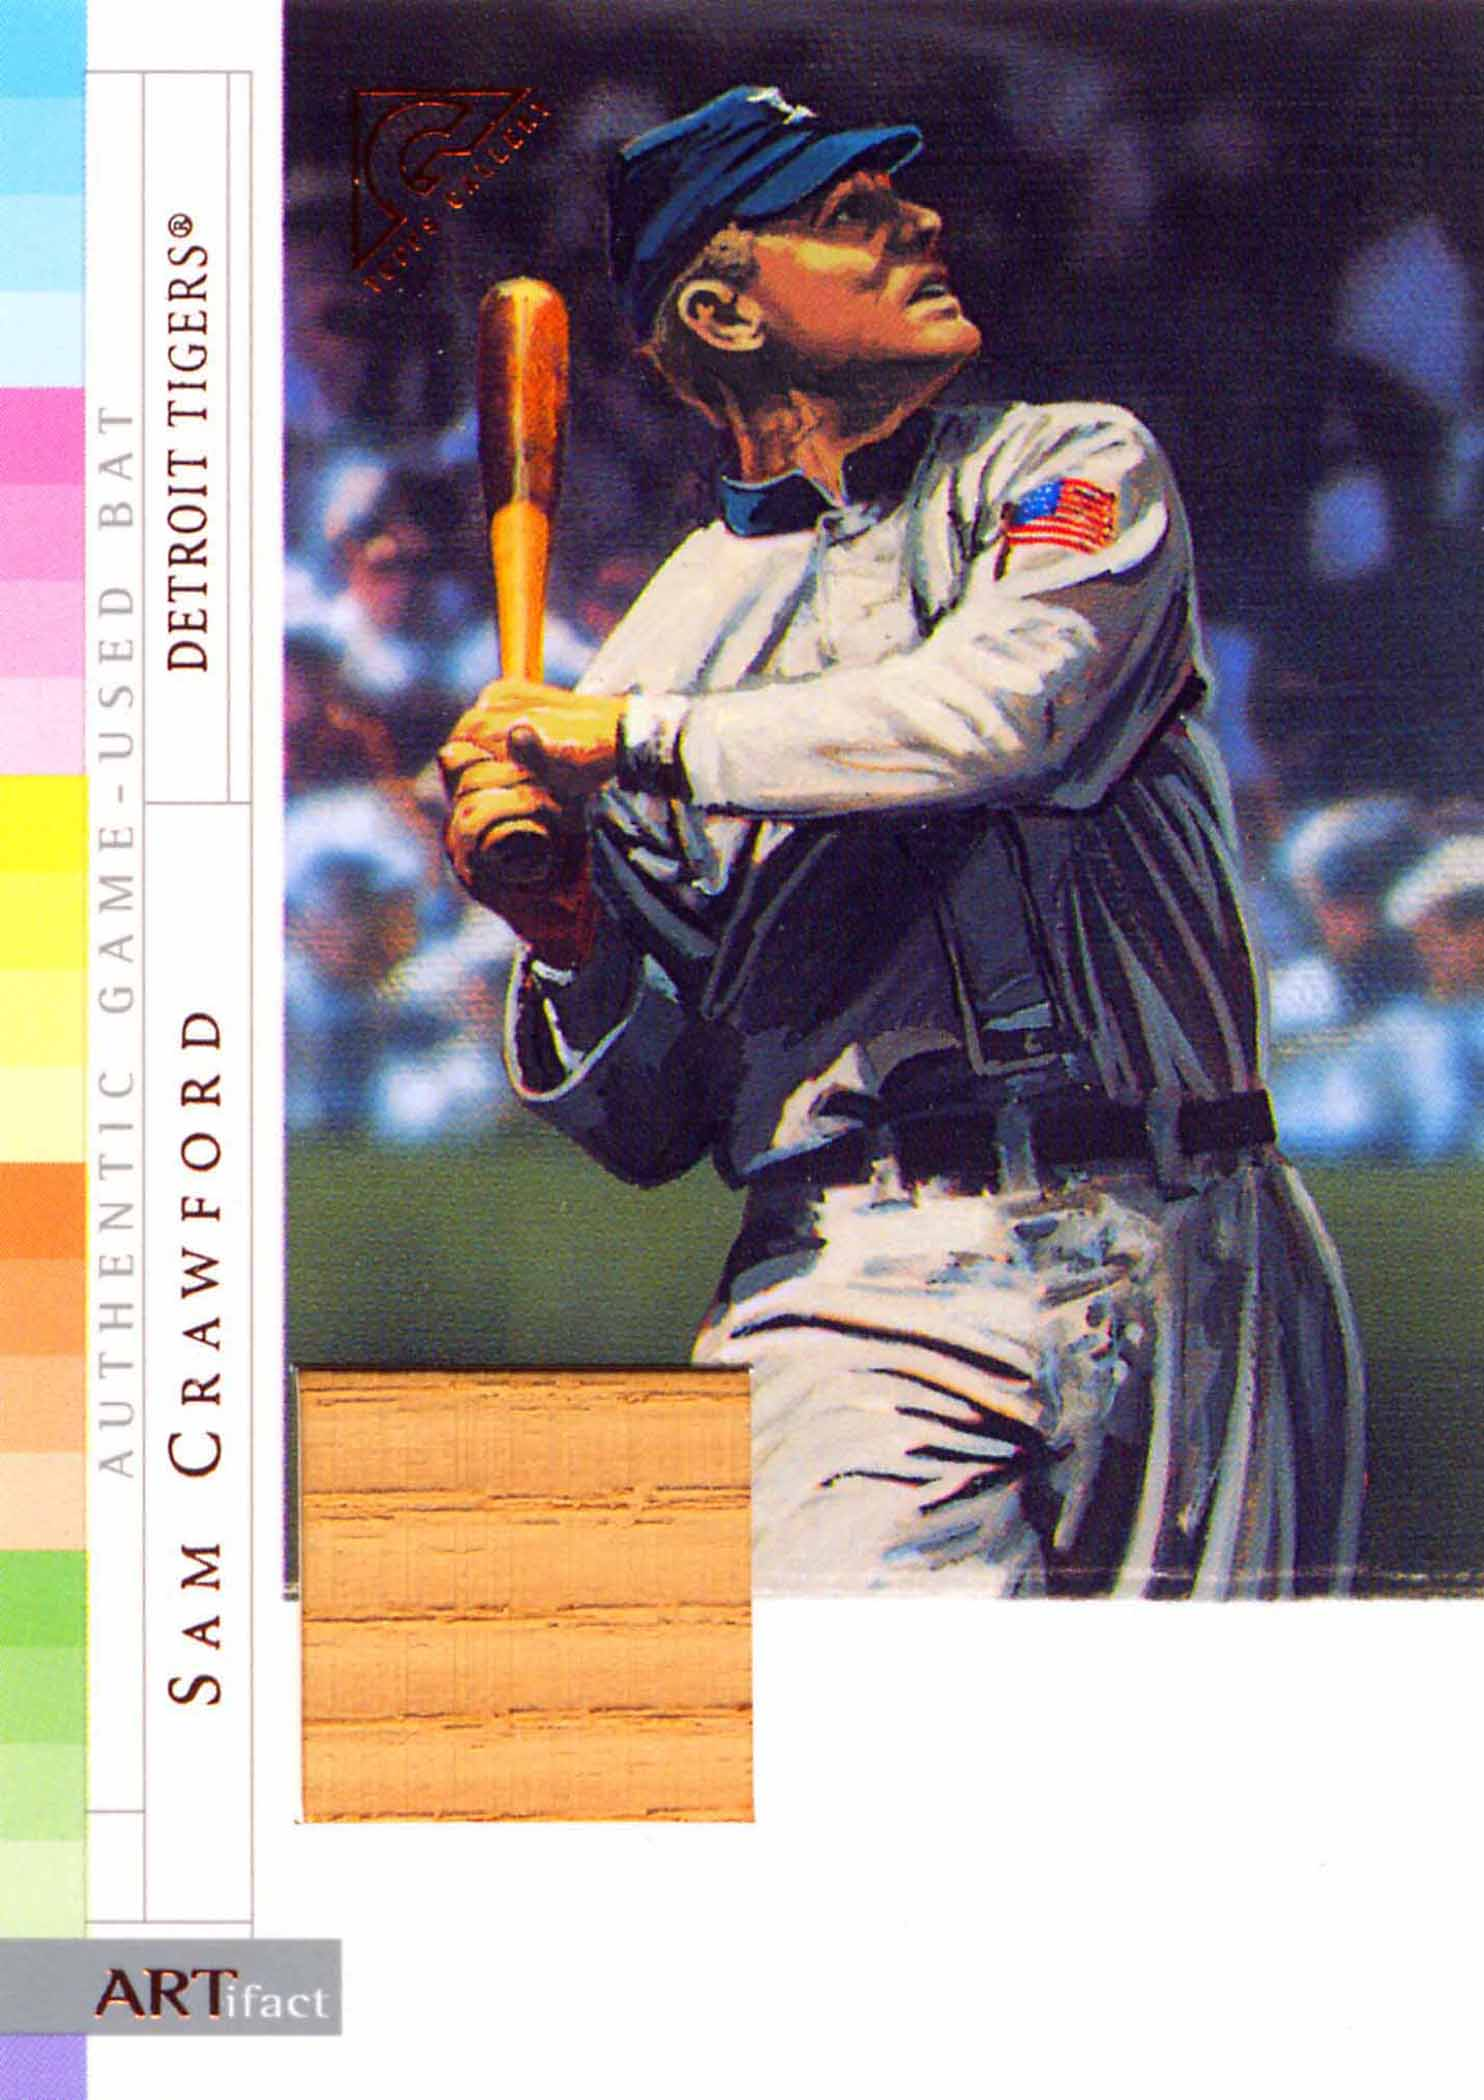 2003 Topps Gallery Hall of Fame ARTifact Relics Bat